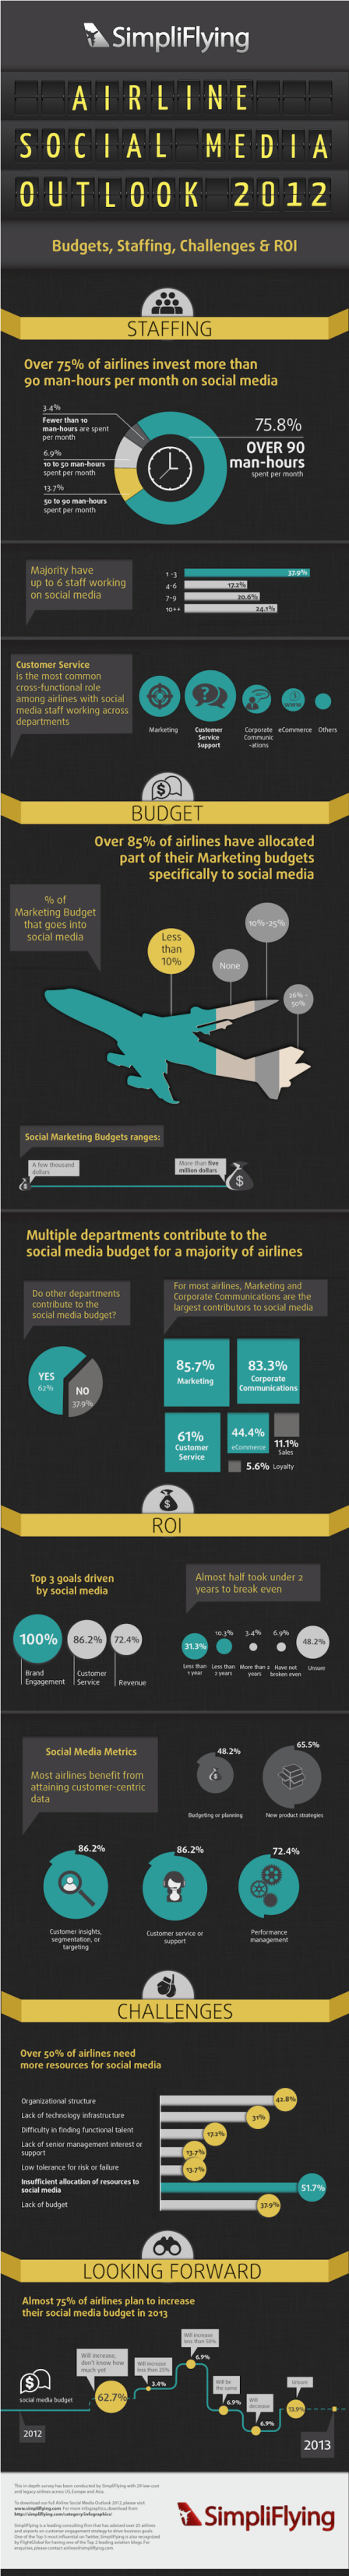 11. Airline Social Media Outlook 2012 2013